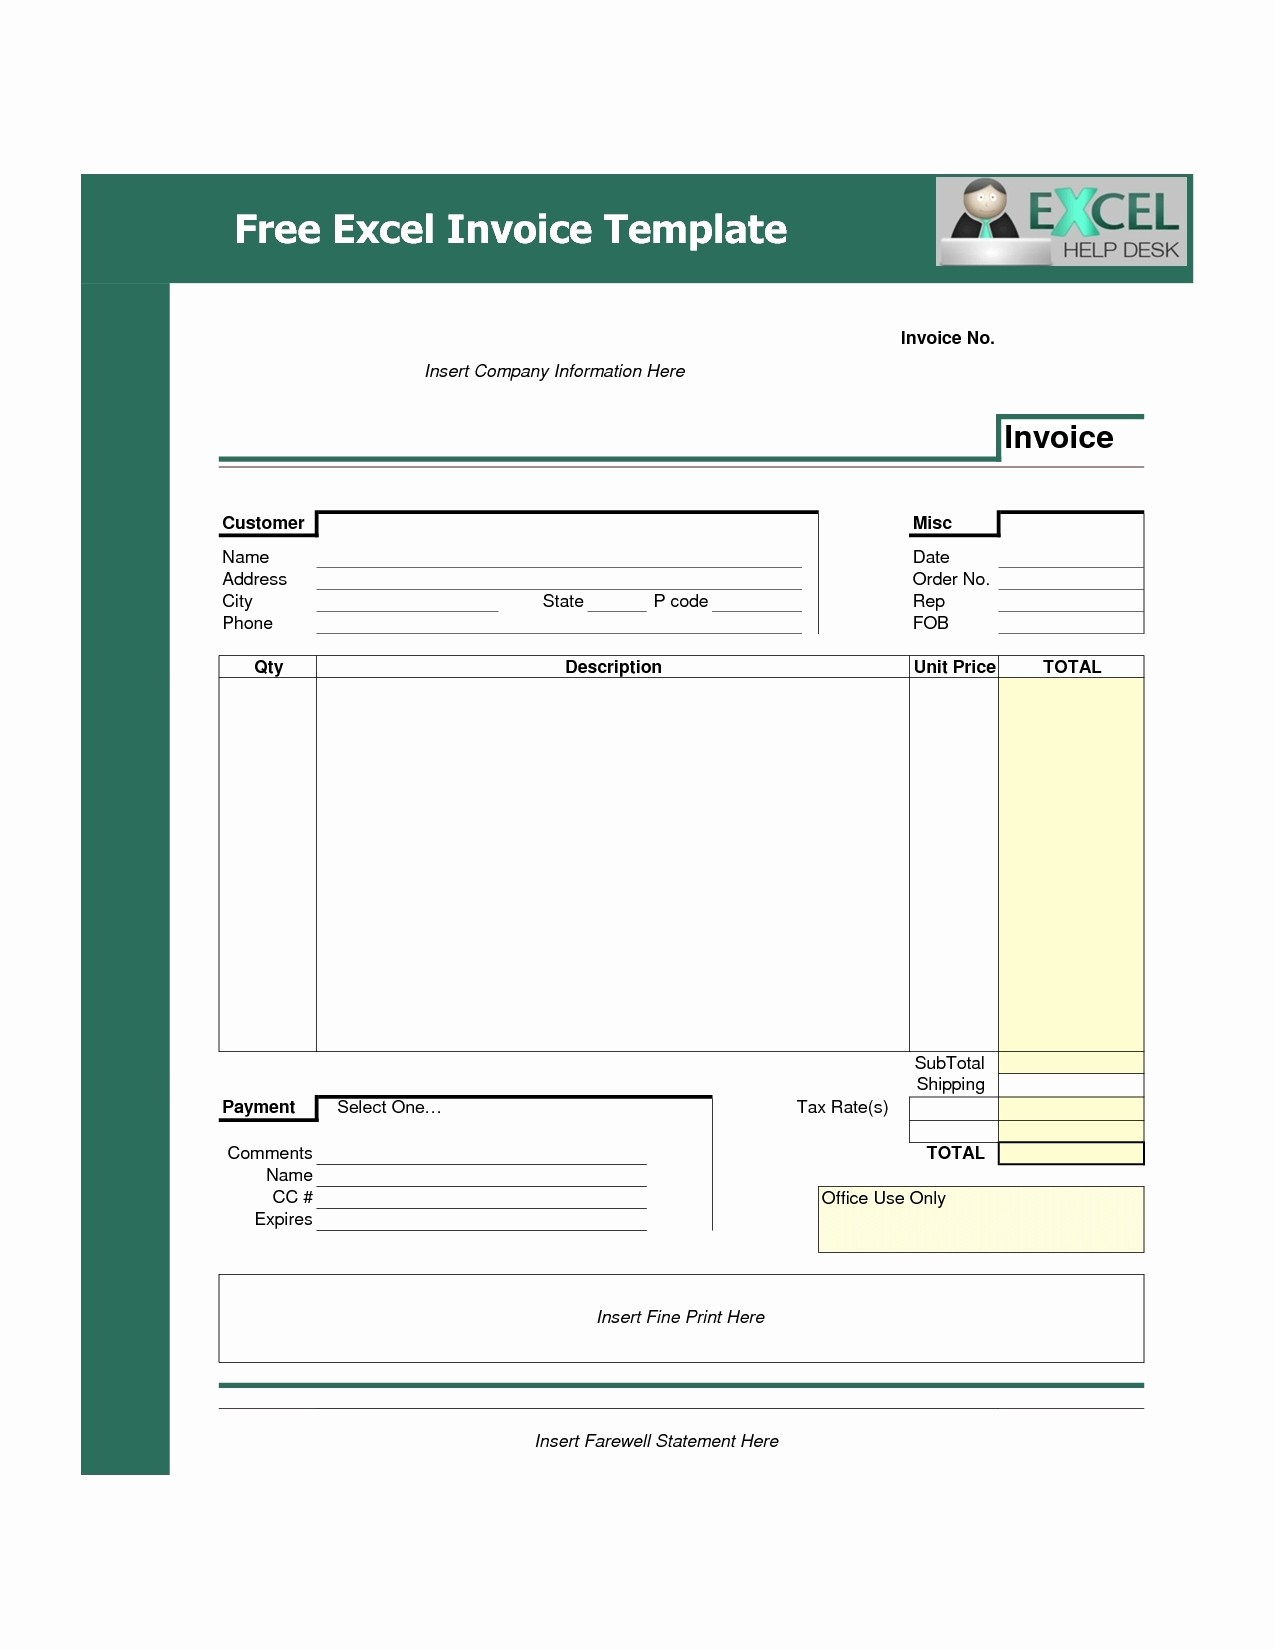 Invoice Bill format In Excel Elegant Tax Invoice format In Excel Free Download Invoice